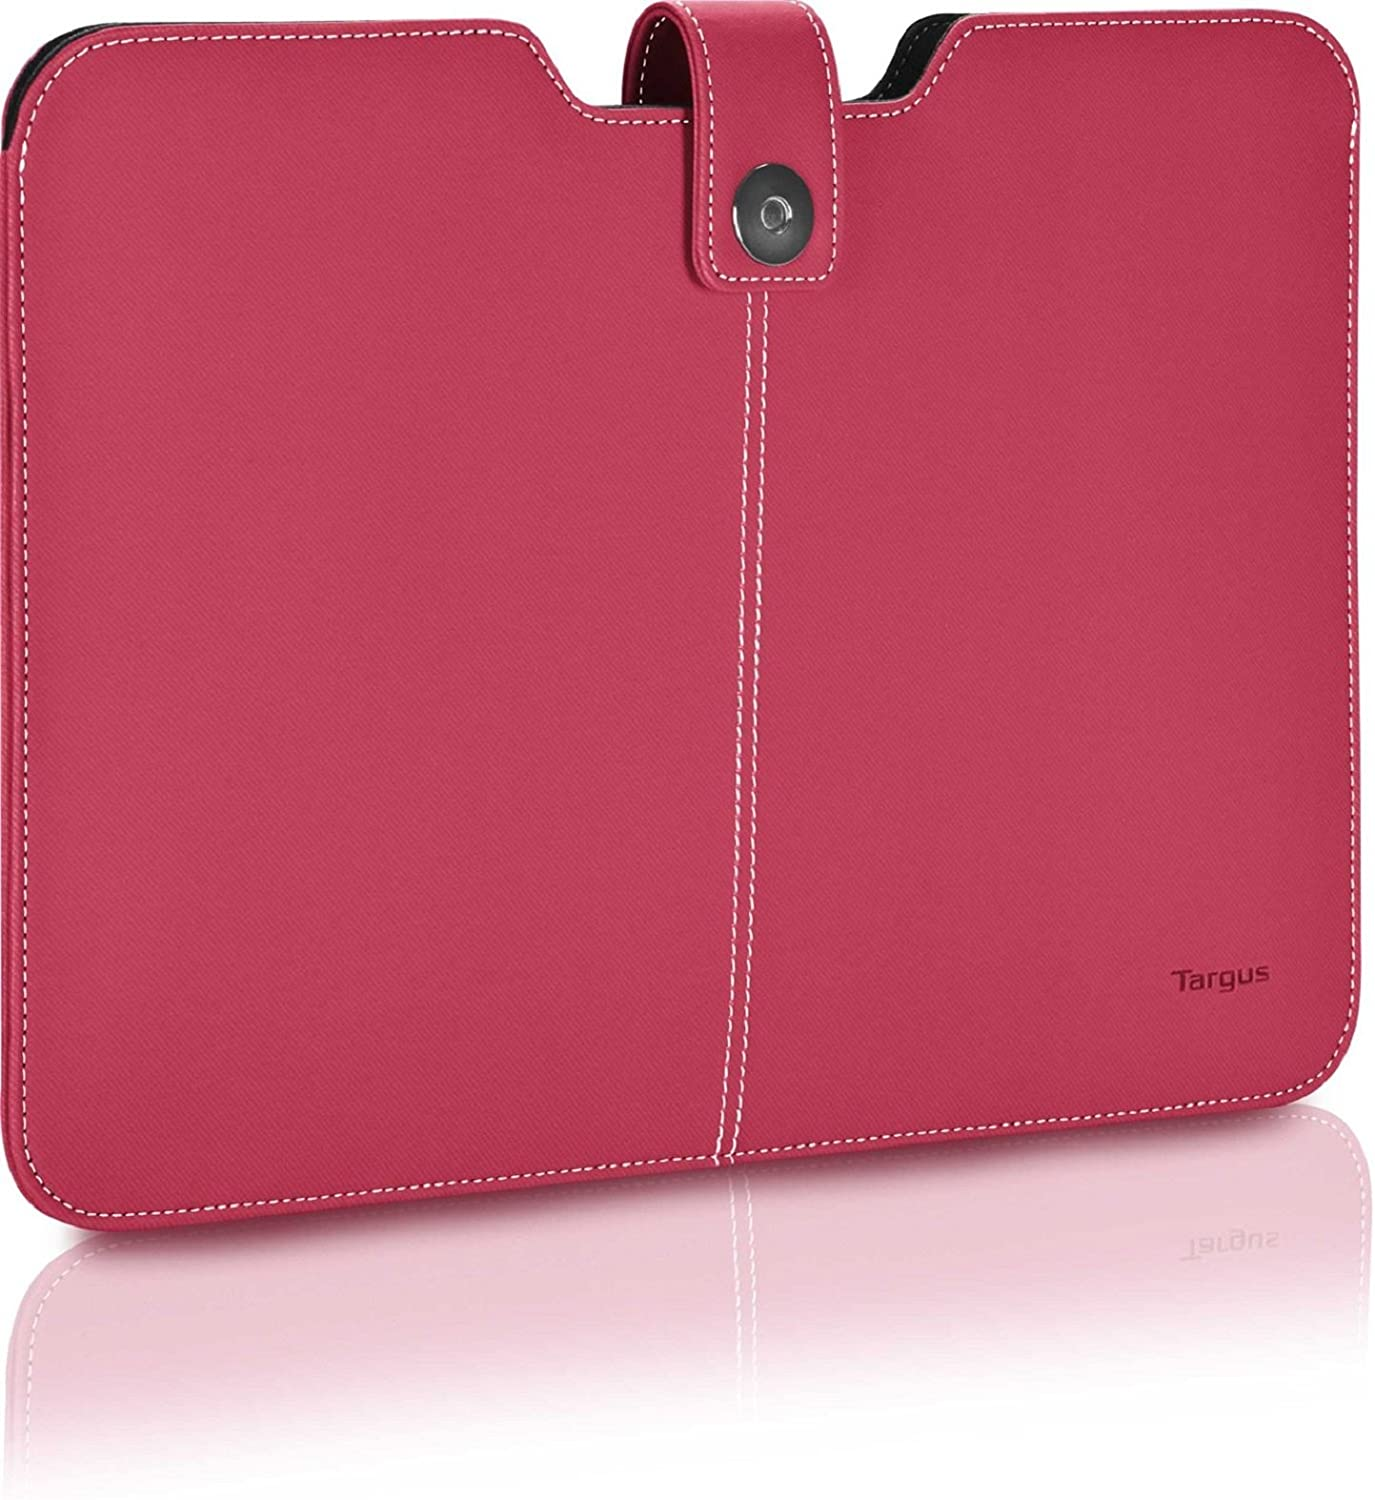 Click to Open Expanded View Targus Twill Sleeve for 13.3-inch Laptop/Ultrabook/Macbook Air/Pro Pink Best Top Popular Present Idea Her Him Women Men Aunt Roommate Coed Coworker Holiday Stocking Stuffer